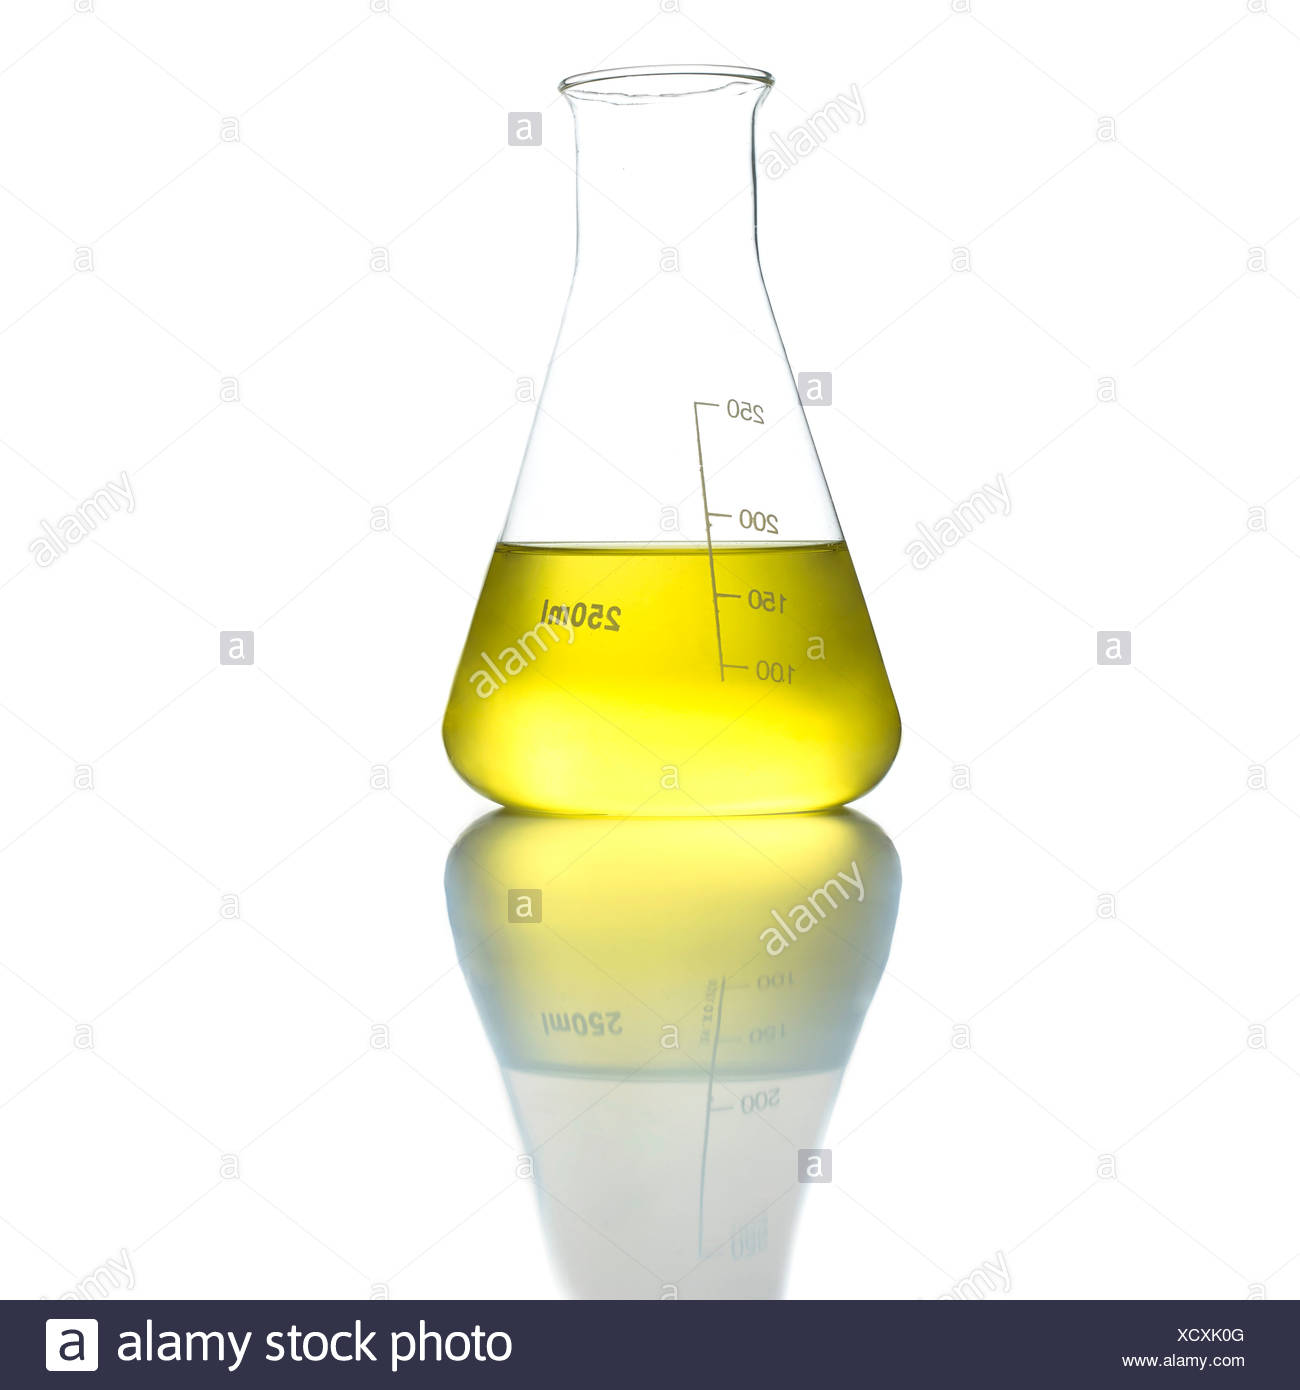 Conical flask - Stock Image